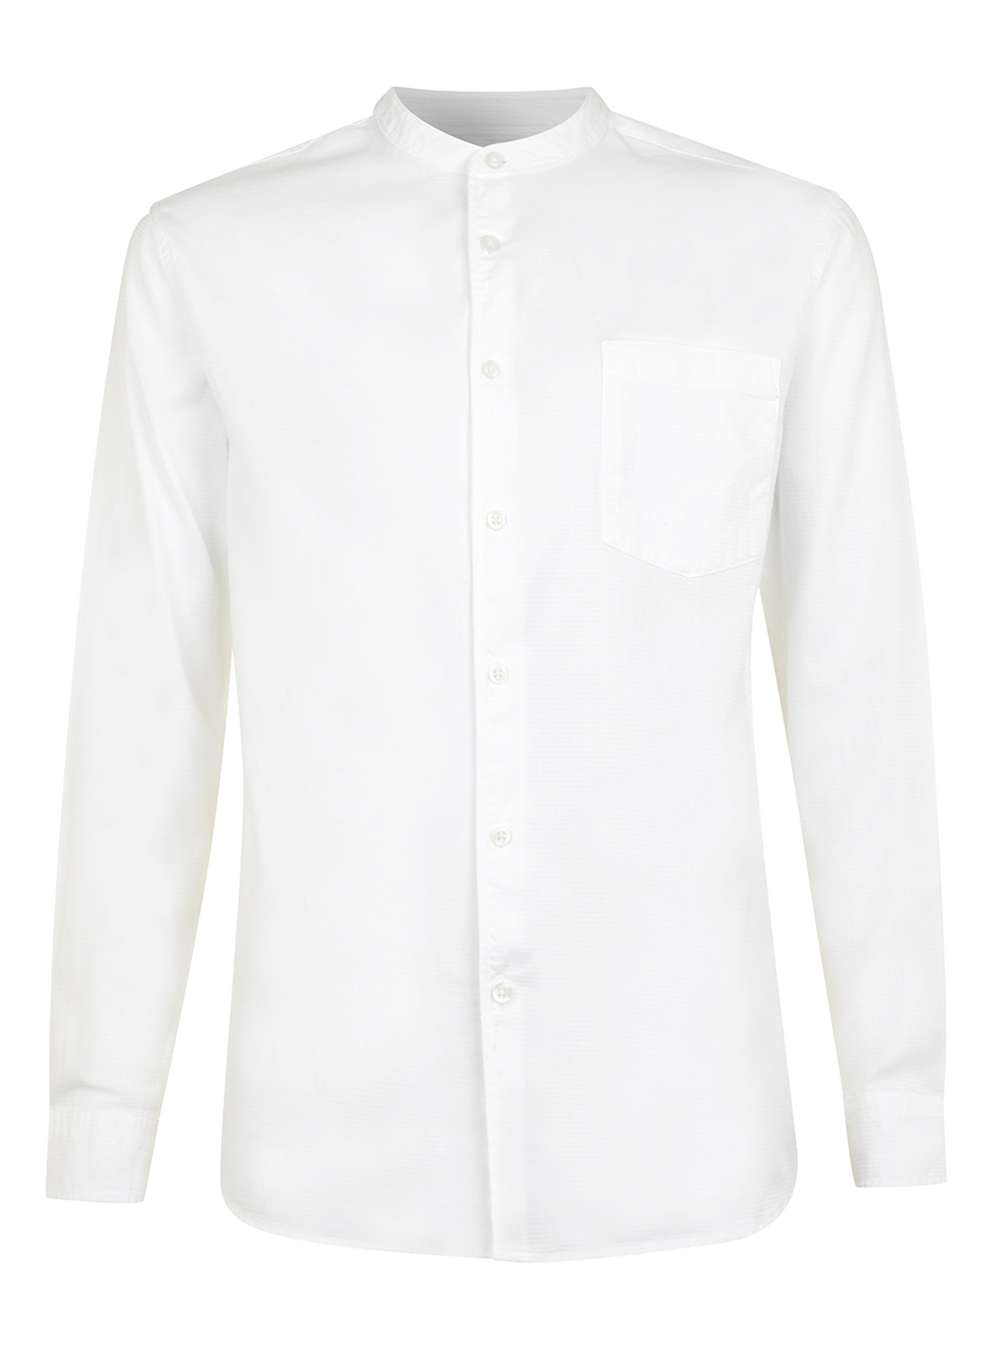 Topman White Shirt